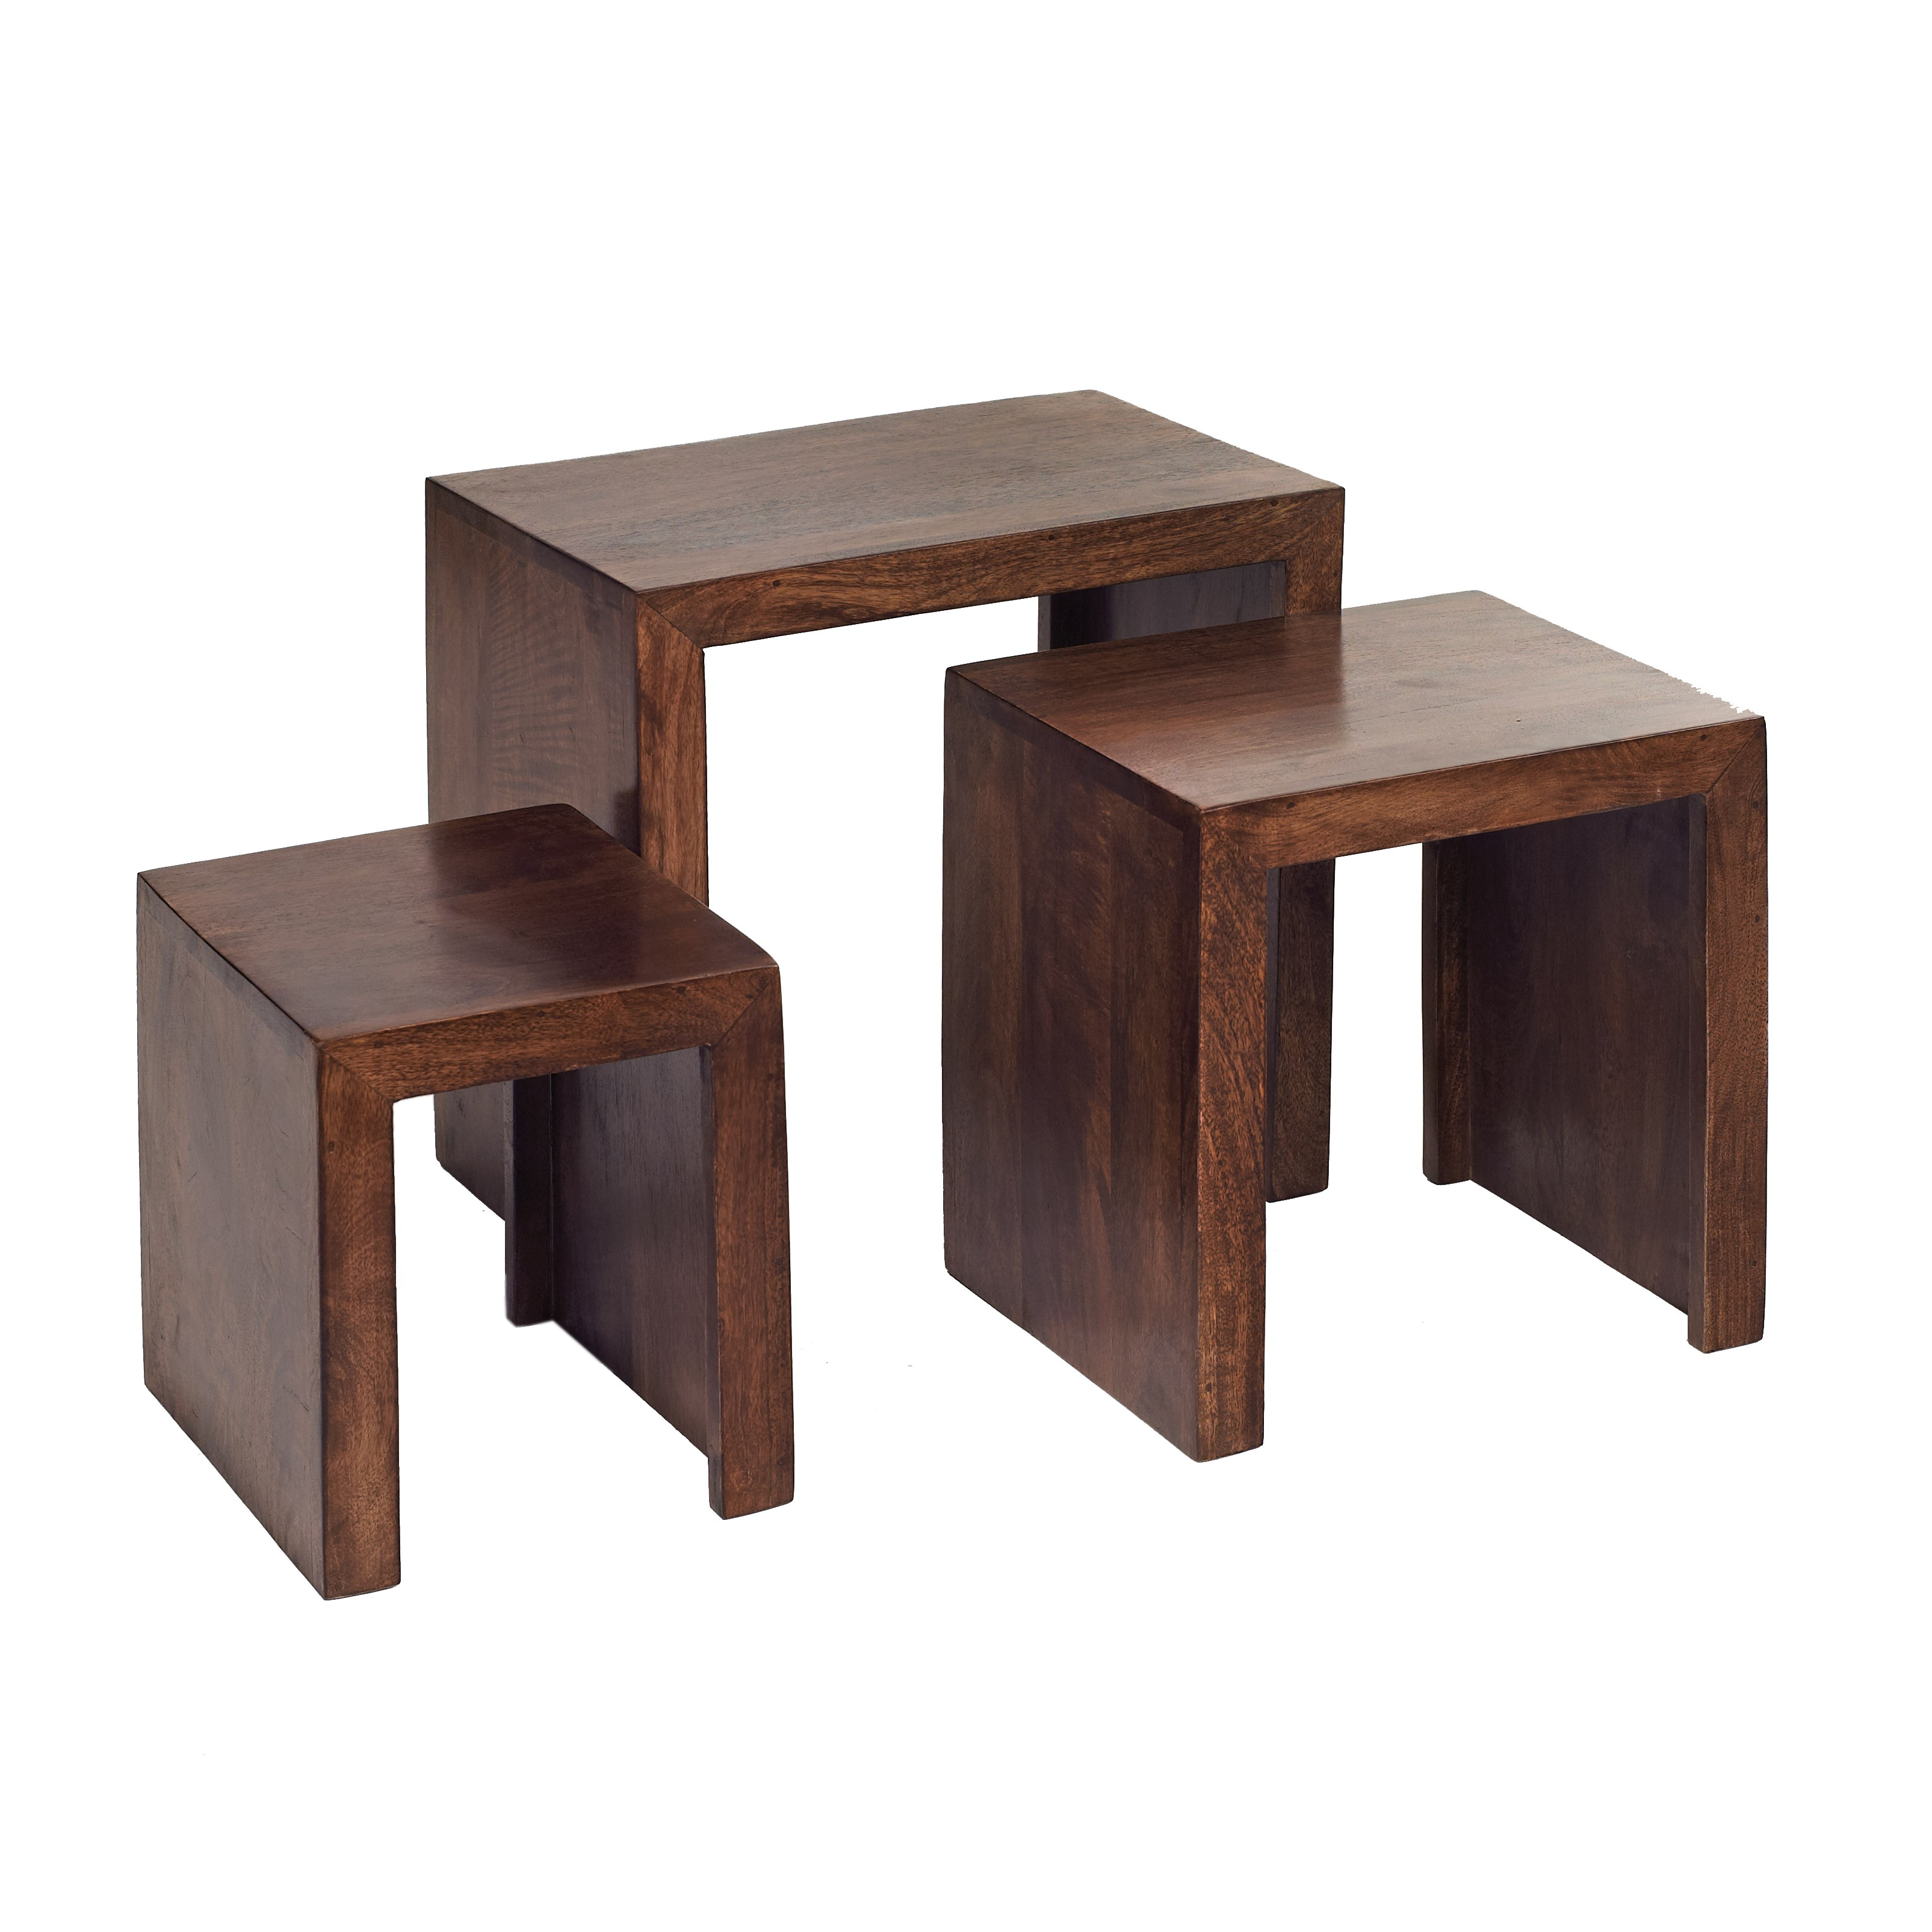 Dakota Mango Nest of 3 Tables Verty Indian Furniture